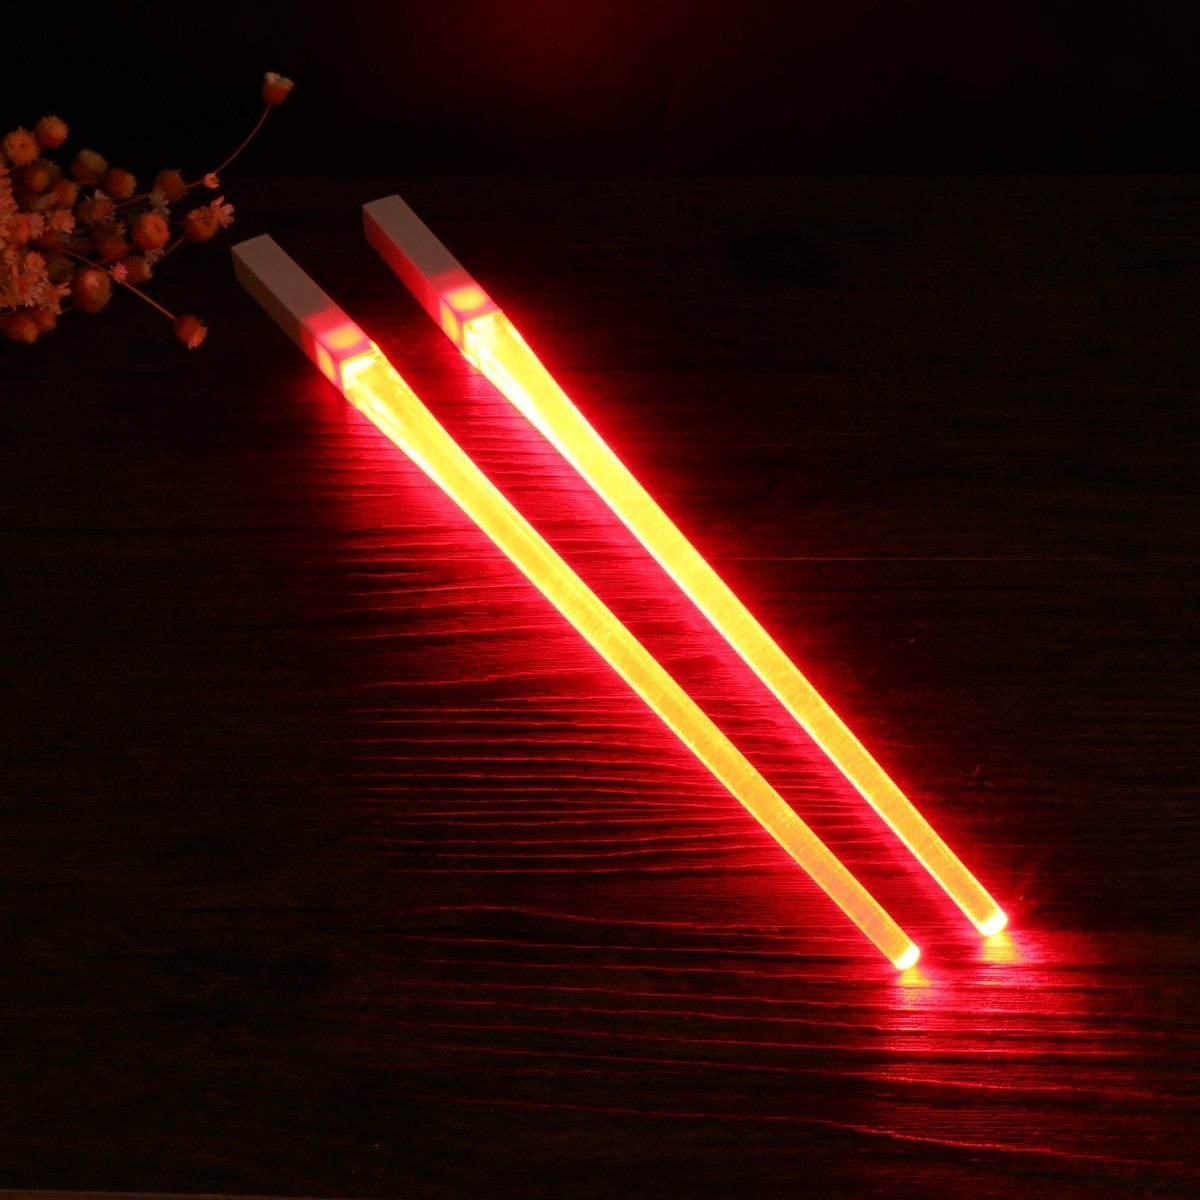 LED Lightsaber Chopsticks with Durable Portable BPA Free and Food Safe Tableware